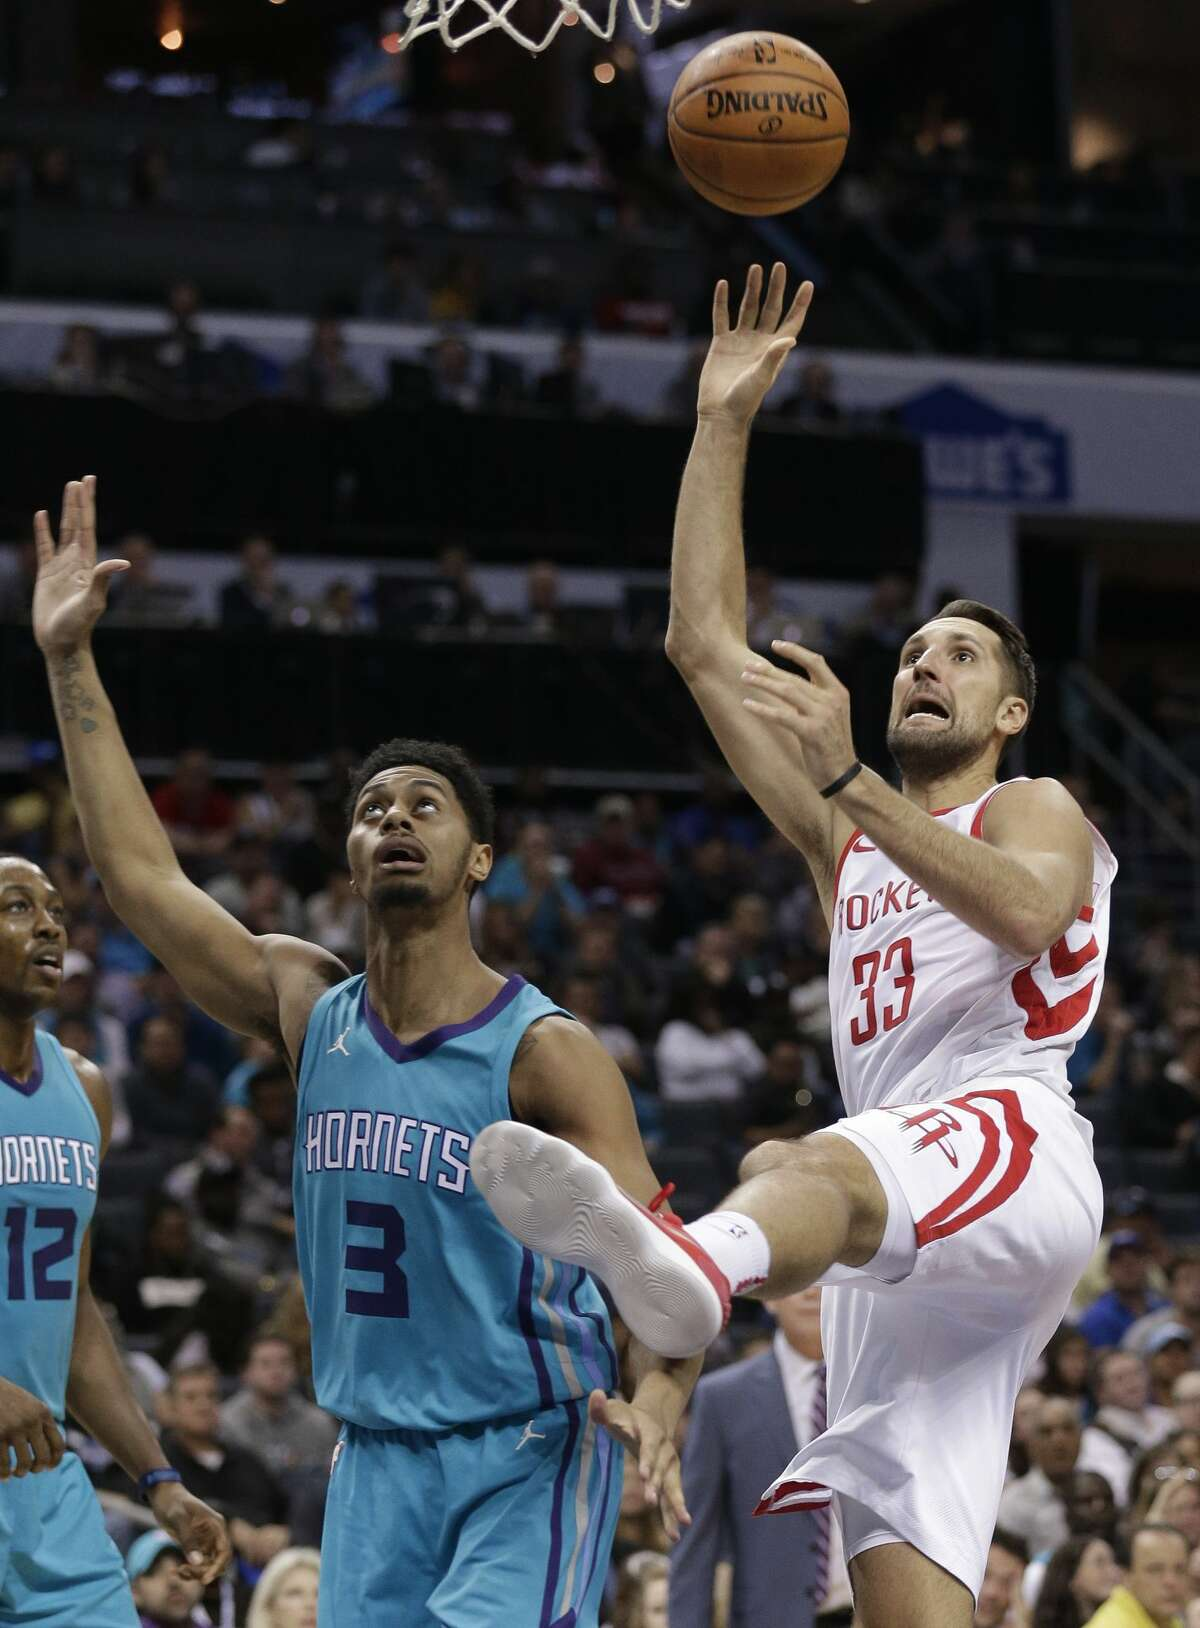 Houston Rockets' Ryan Anderson (33) shoots over Charlotte Hornets' Jeremy Lamb (3) during the second half of an NBA basketball game in Charlotte, N.C., Friday, Oct. 27, 2017. (AP Photo/Chuck Burton)